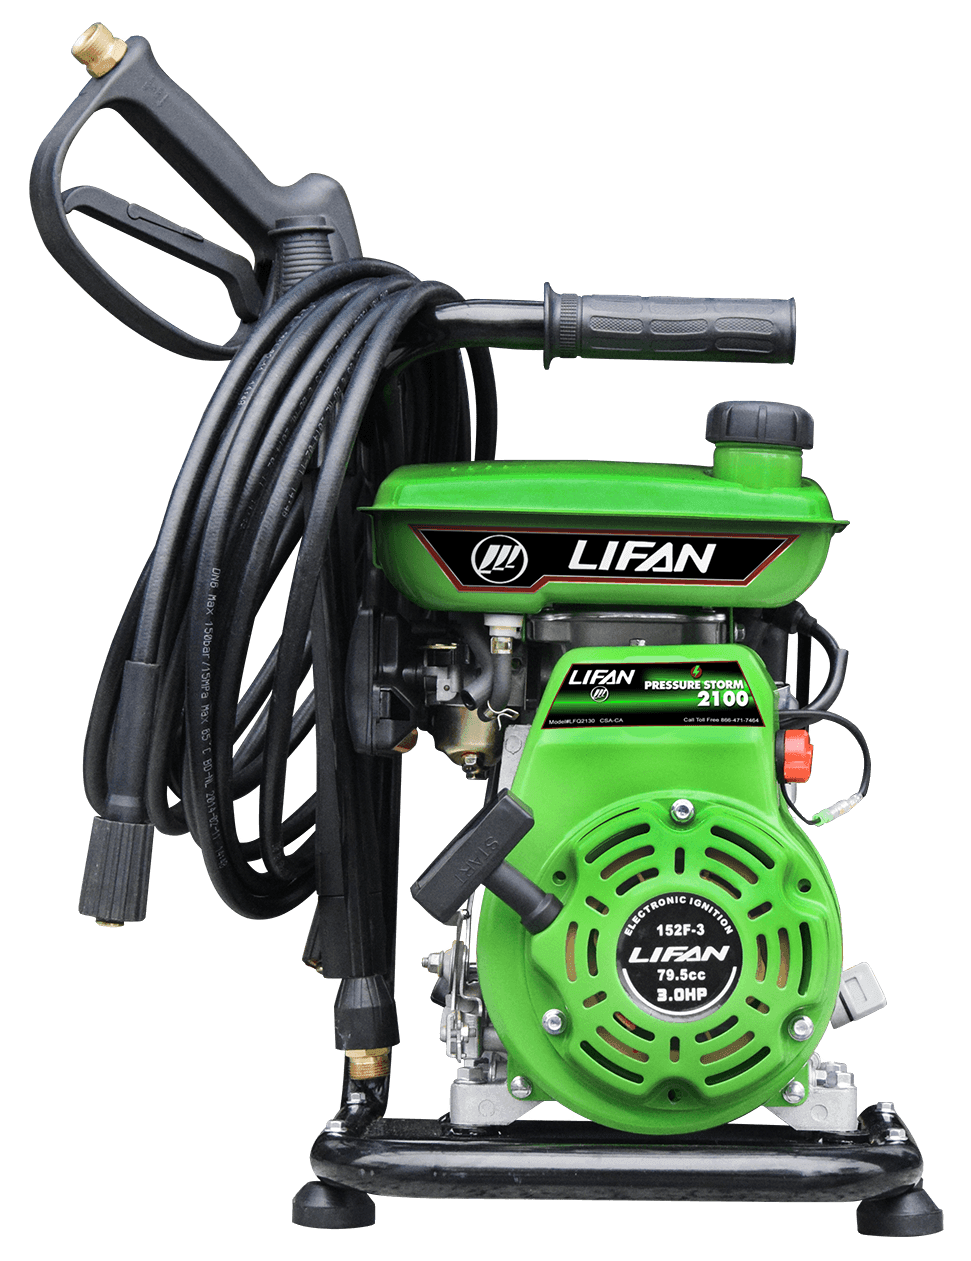 PRESSURE STORM 2100 | Lifan Power USA - Power Equipment